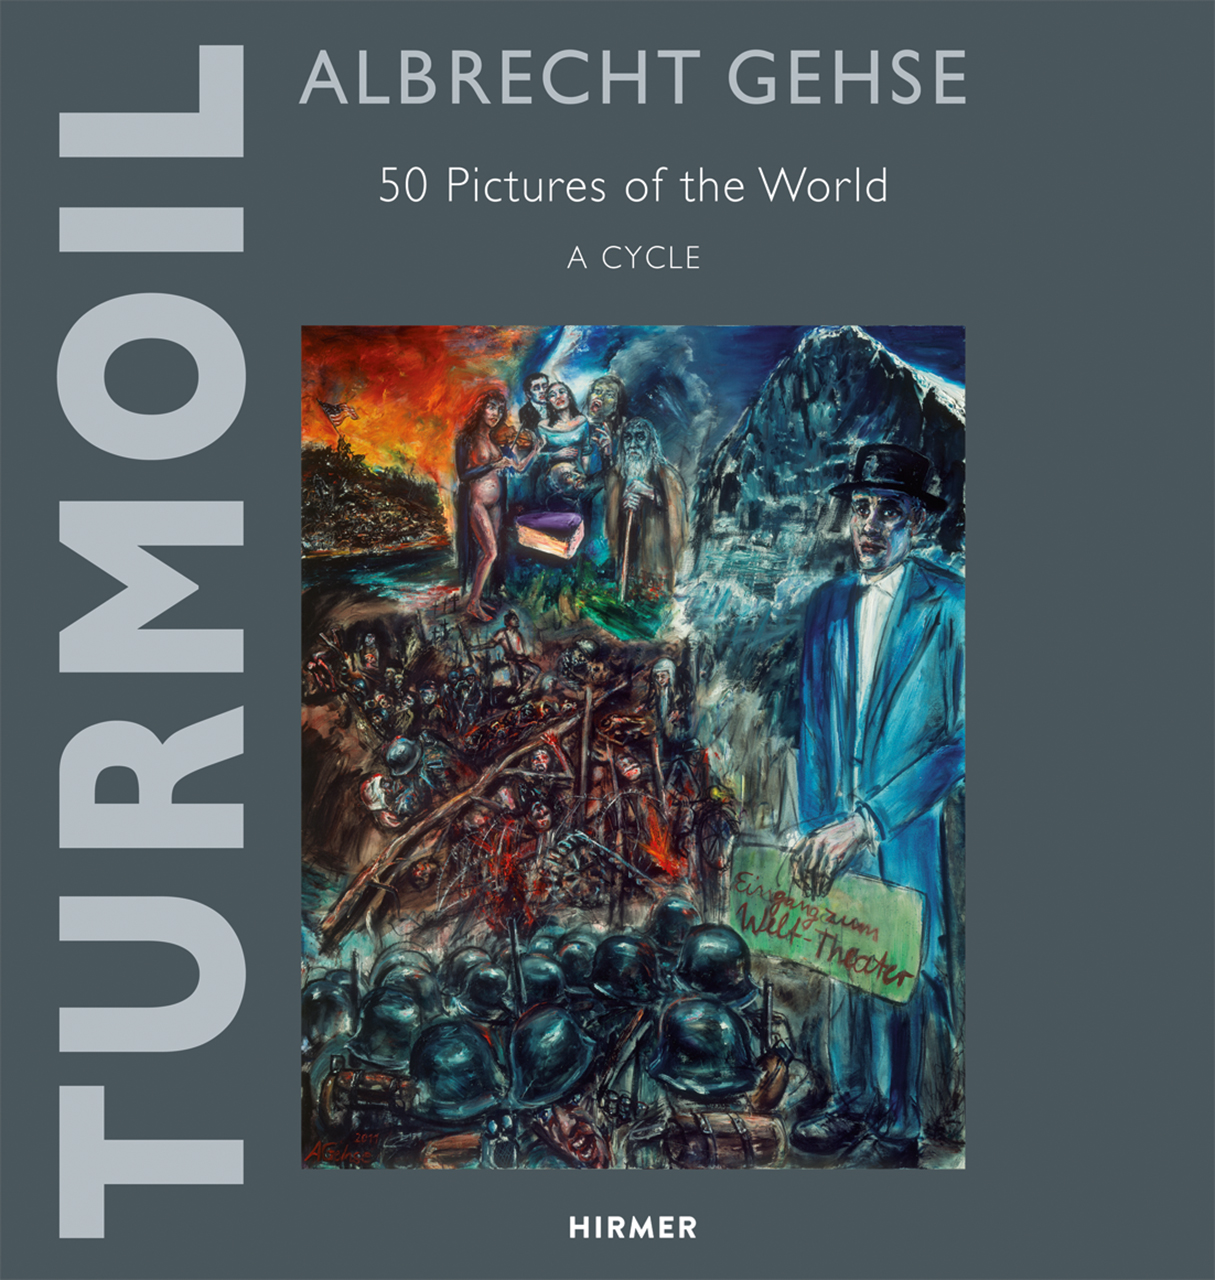 Albrecht Gehse--Turmoil: 50 Pictures of the World--A Cycle